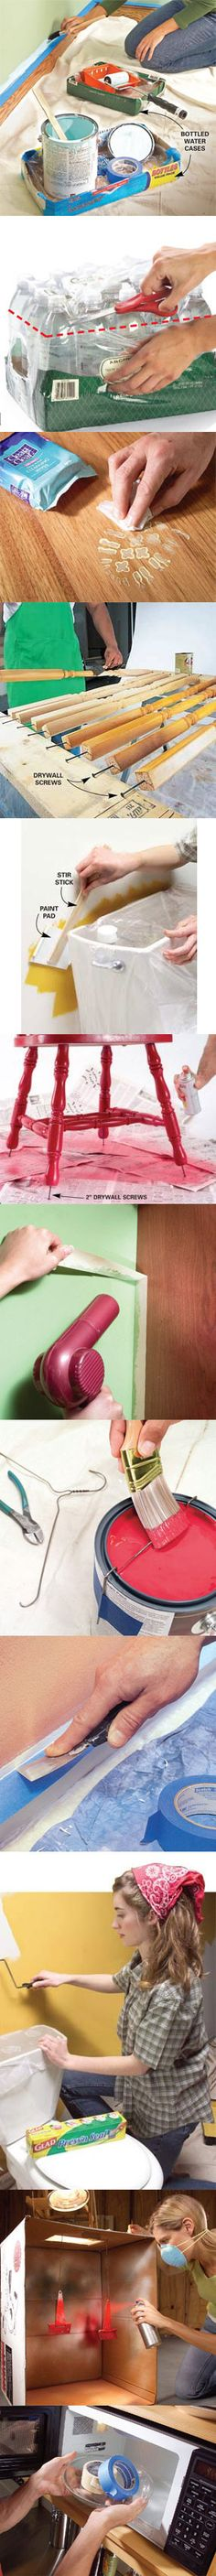 Painting a room gives it an instant makeover but cleaning up during and after can feel like it takes forever. These easy tips will help you minimize the mess while you paint and cut your cleanup time in half. Find all 11 mess-free painting tips at http://www.familyhandyman.com/DIY-Projects/Painting/Painting-Tips/mess-free-painting-tips/View-All